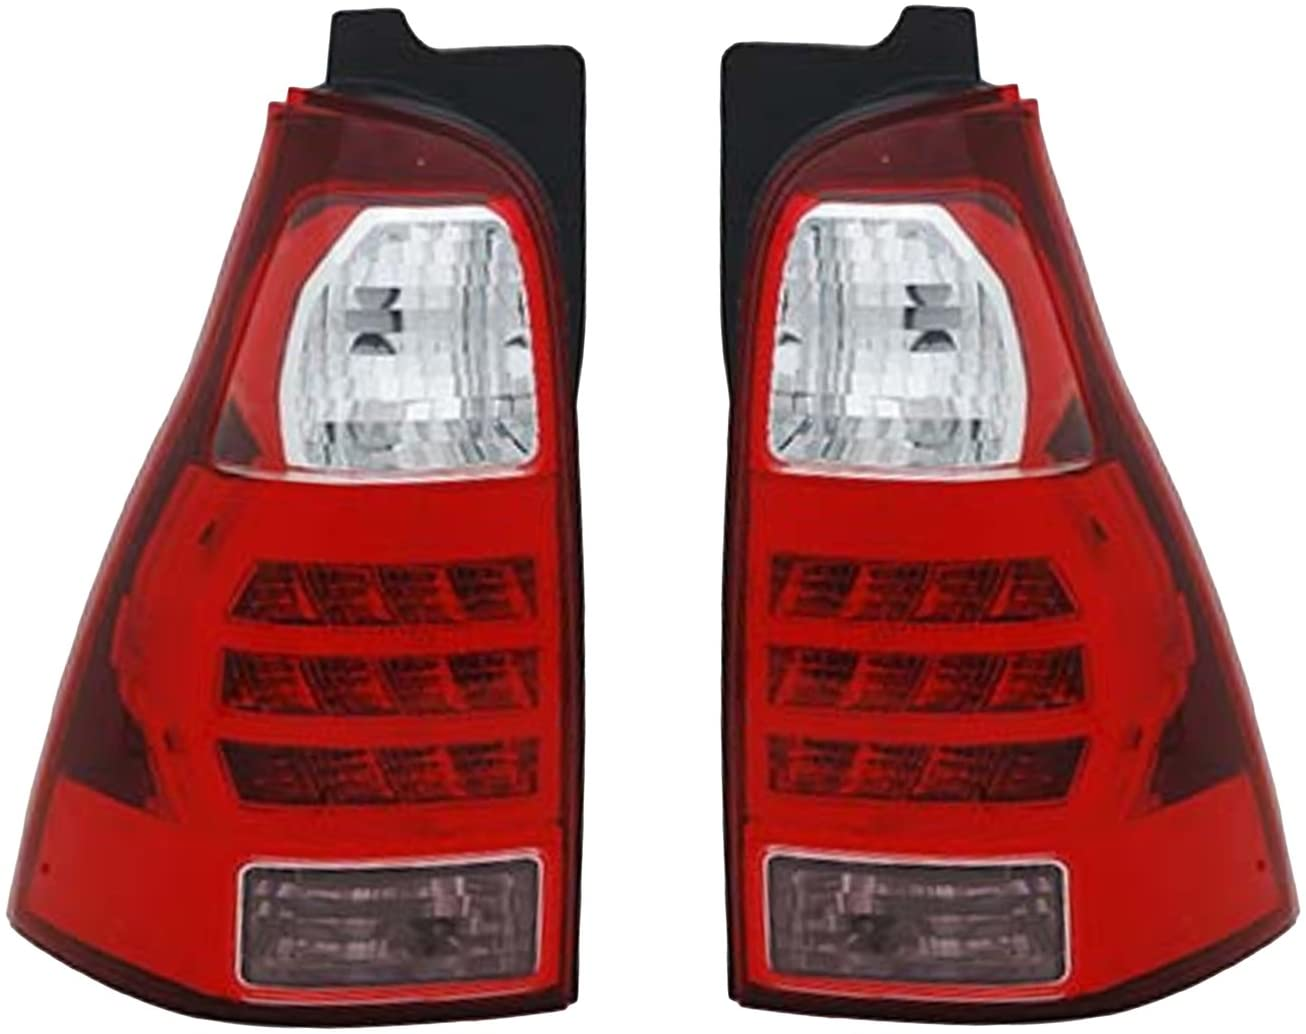 Rareelectrical NEW TAIL LIGHT PAIR COMPATIBLE WITH TOYOTA 4RUNNER 2006 2007 8156135280 TO2800172 81561-35280 TO2801172 81551-35320 8155135320